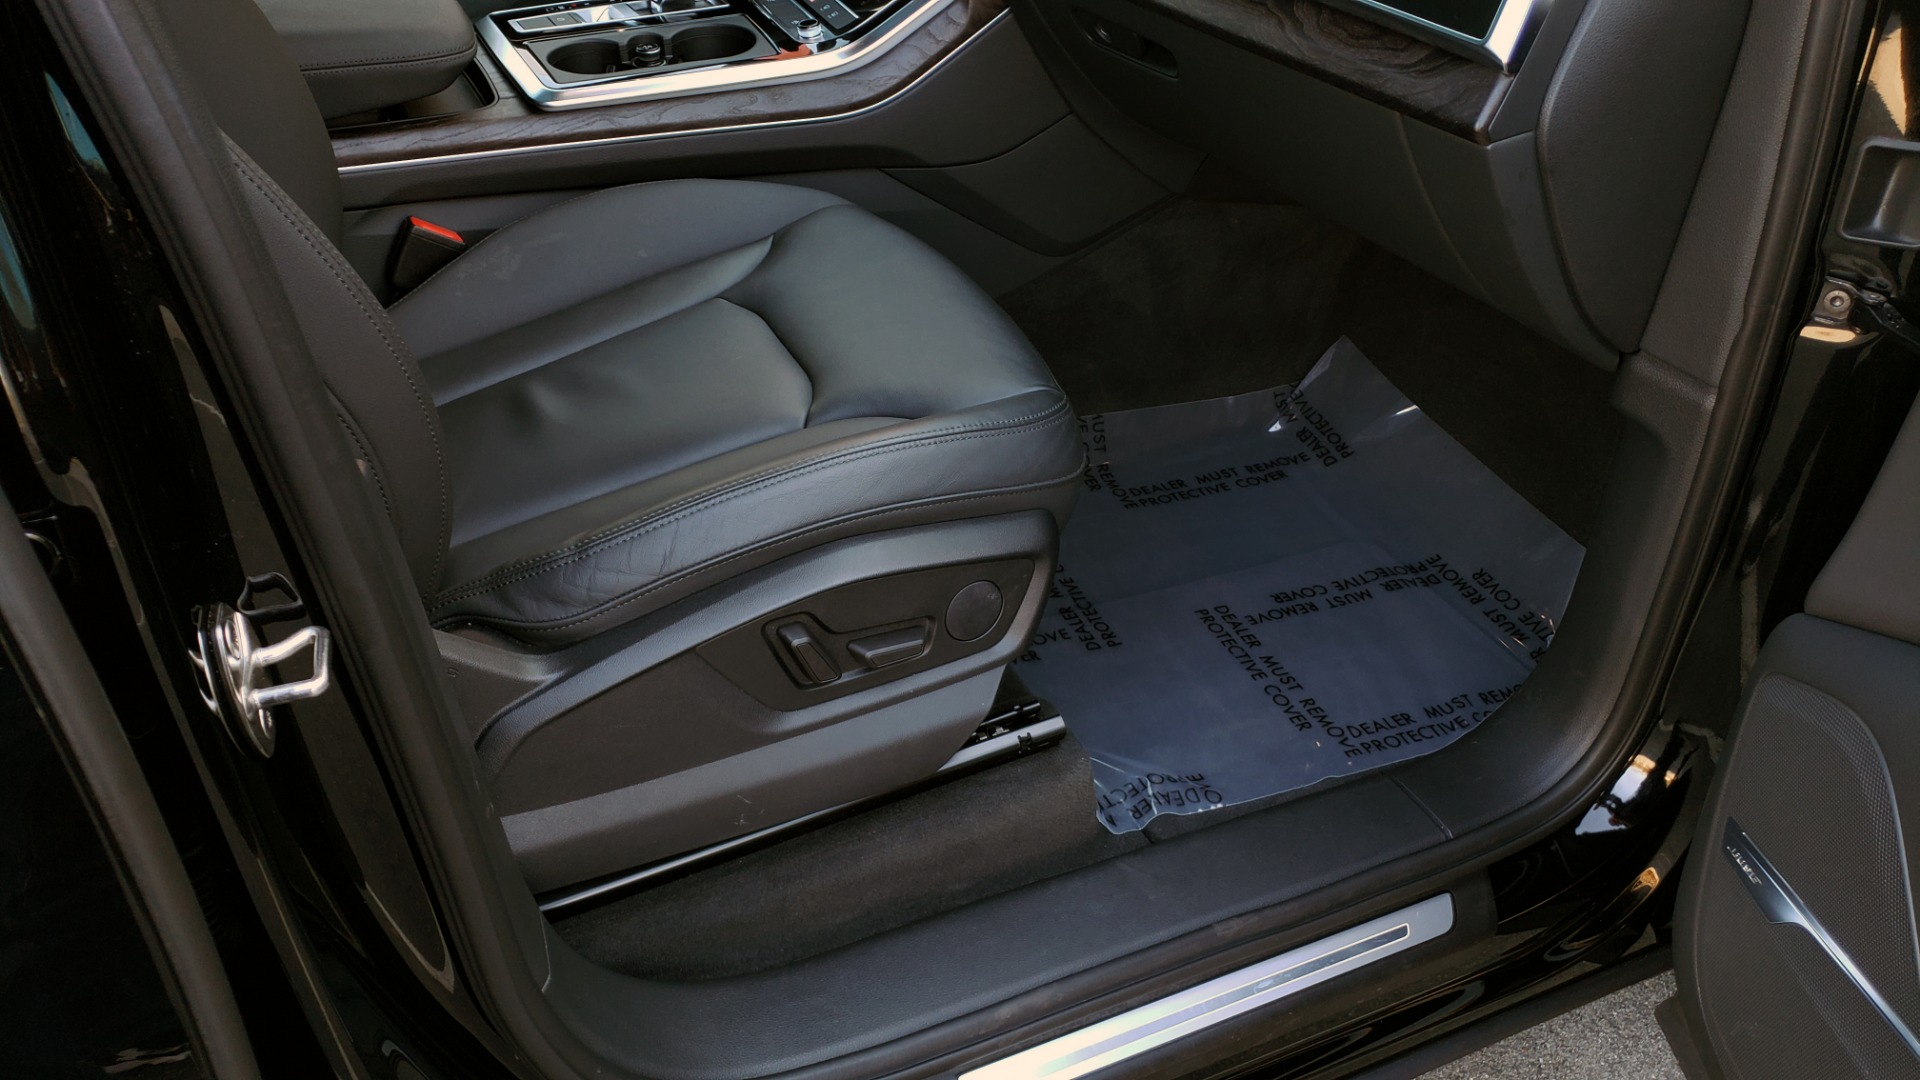 Used 2020 Audi Q7 PREMIUM PLUS / NAV / SUNROOF / 3-ROW / REARVIEW for sale $50,695 at Formula Imports in Charlotte NC 28227 73